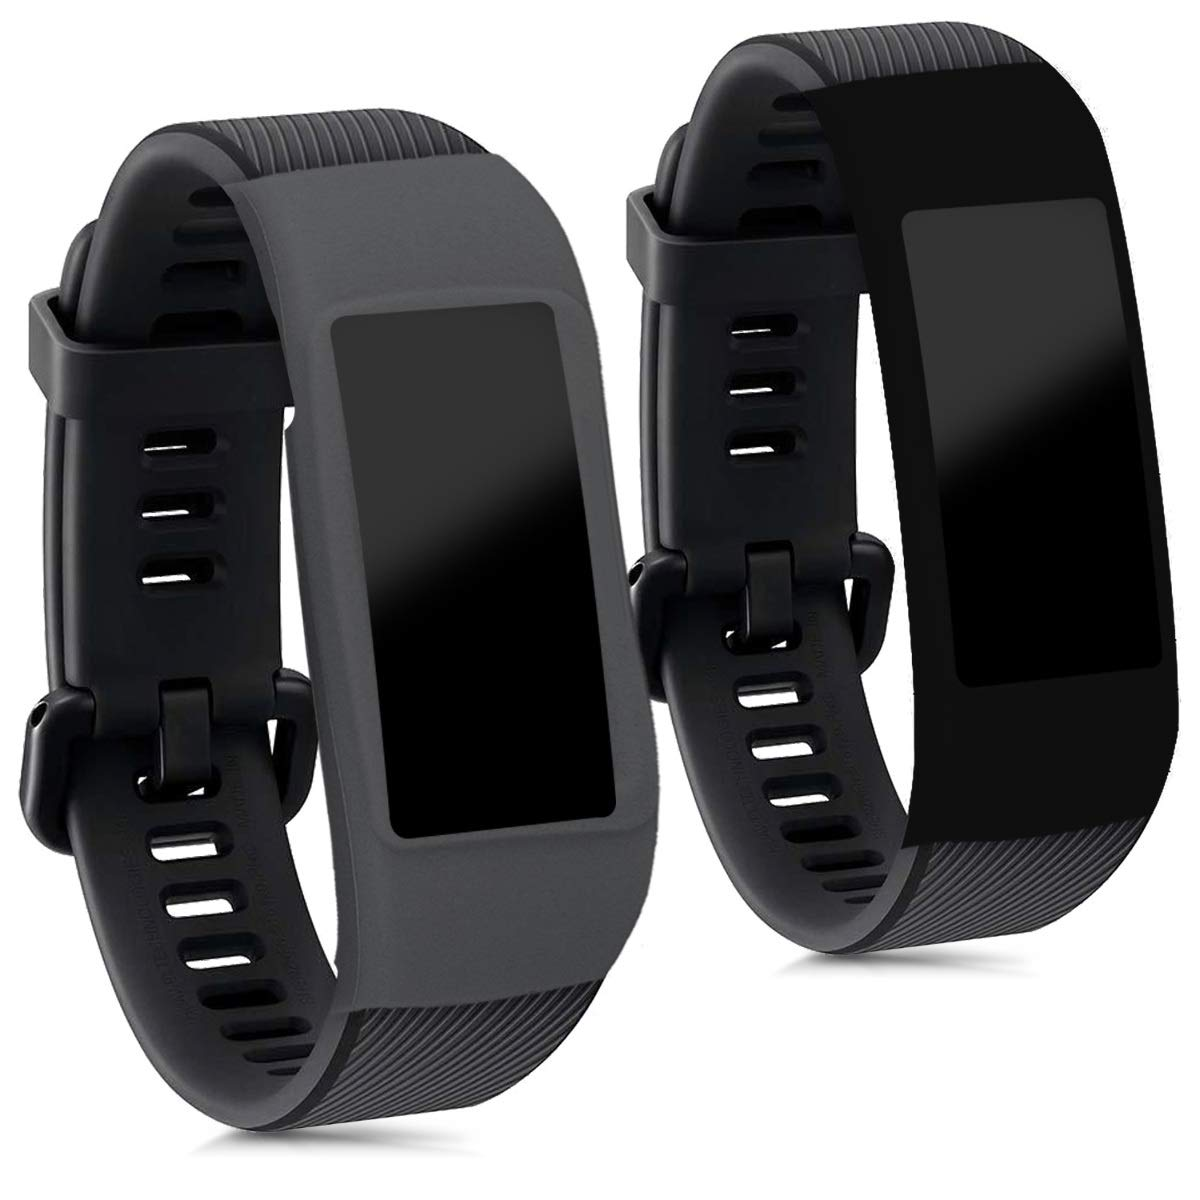 Fitness Tracker Not Included - Black//Dark Blue Set of 2 Silicone Covers kwmobile Cases for Fitbit Charge 2